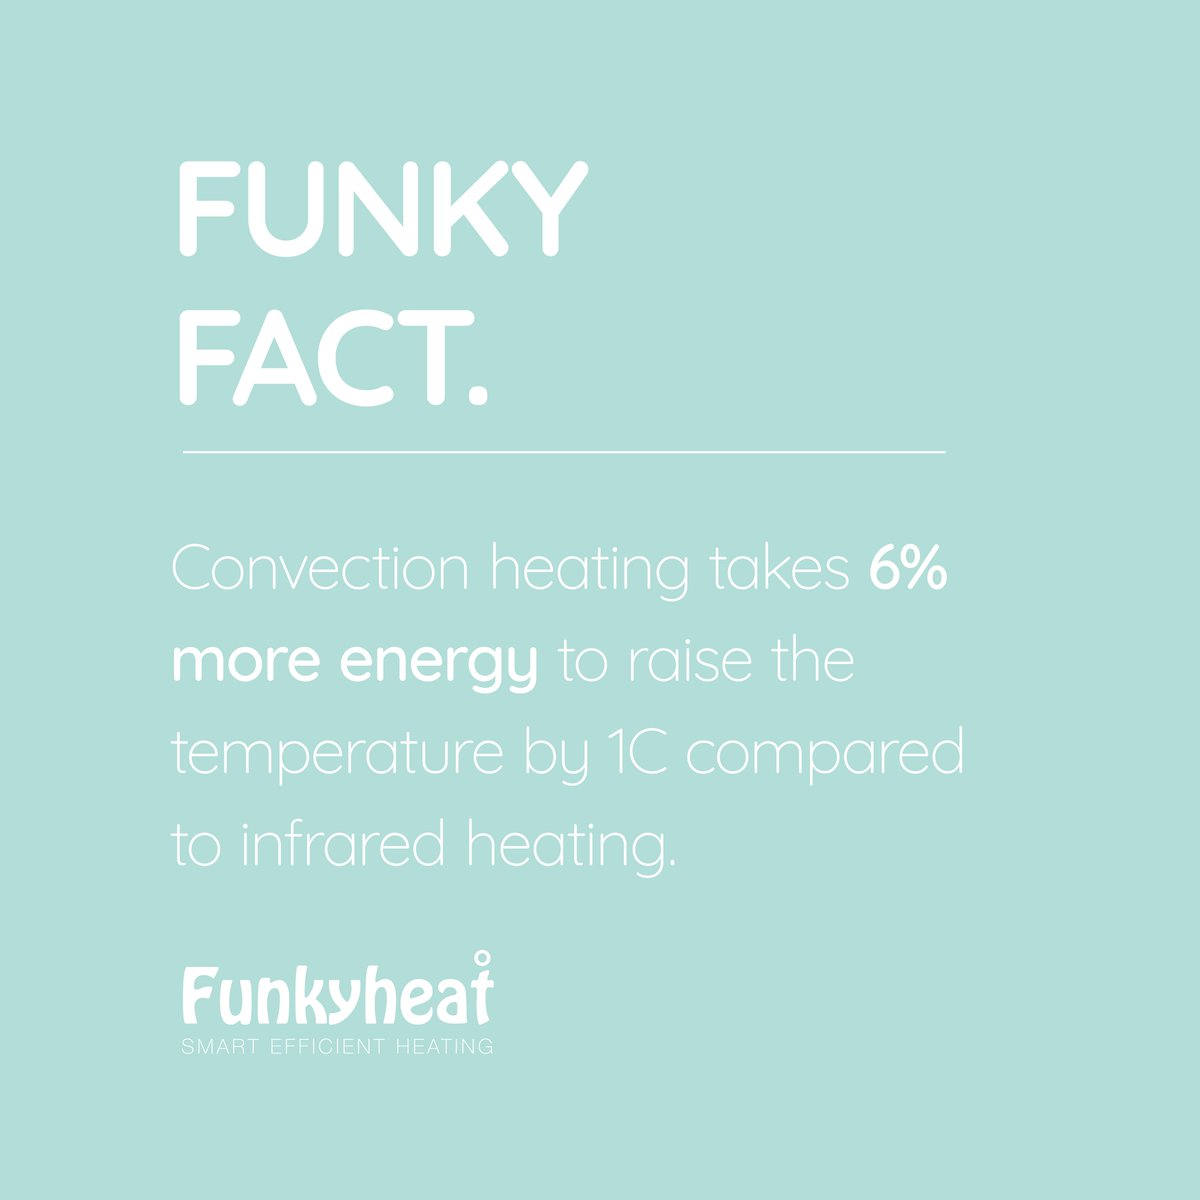 Did you know convectional based heating systems take 6% more energy to raise the temperature by 1C° compared to infrared heating systems? #FunkyFacts